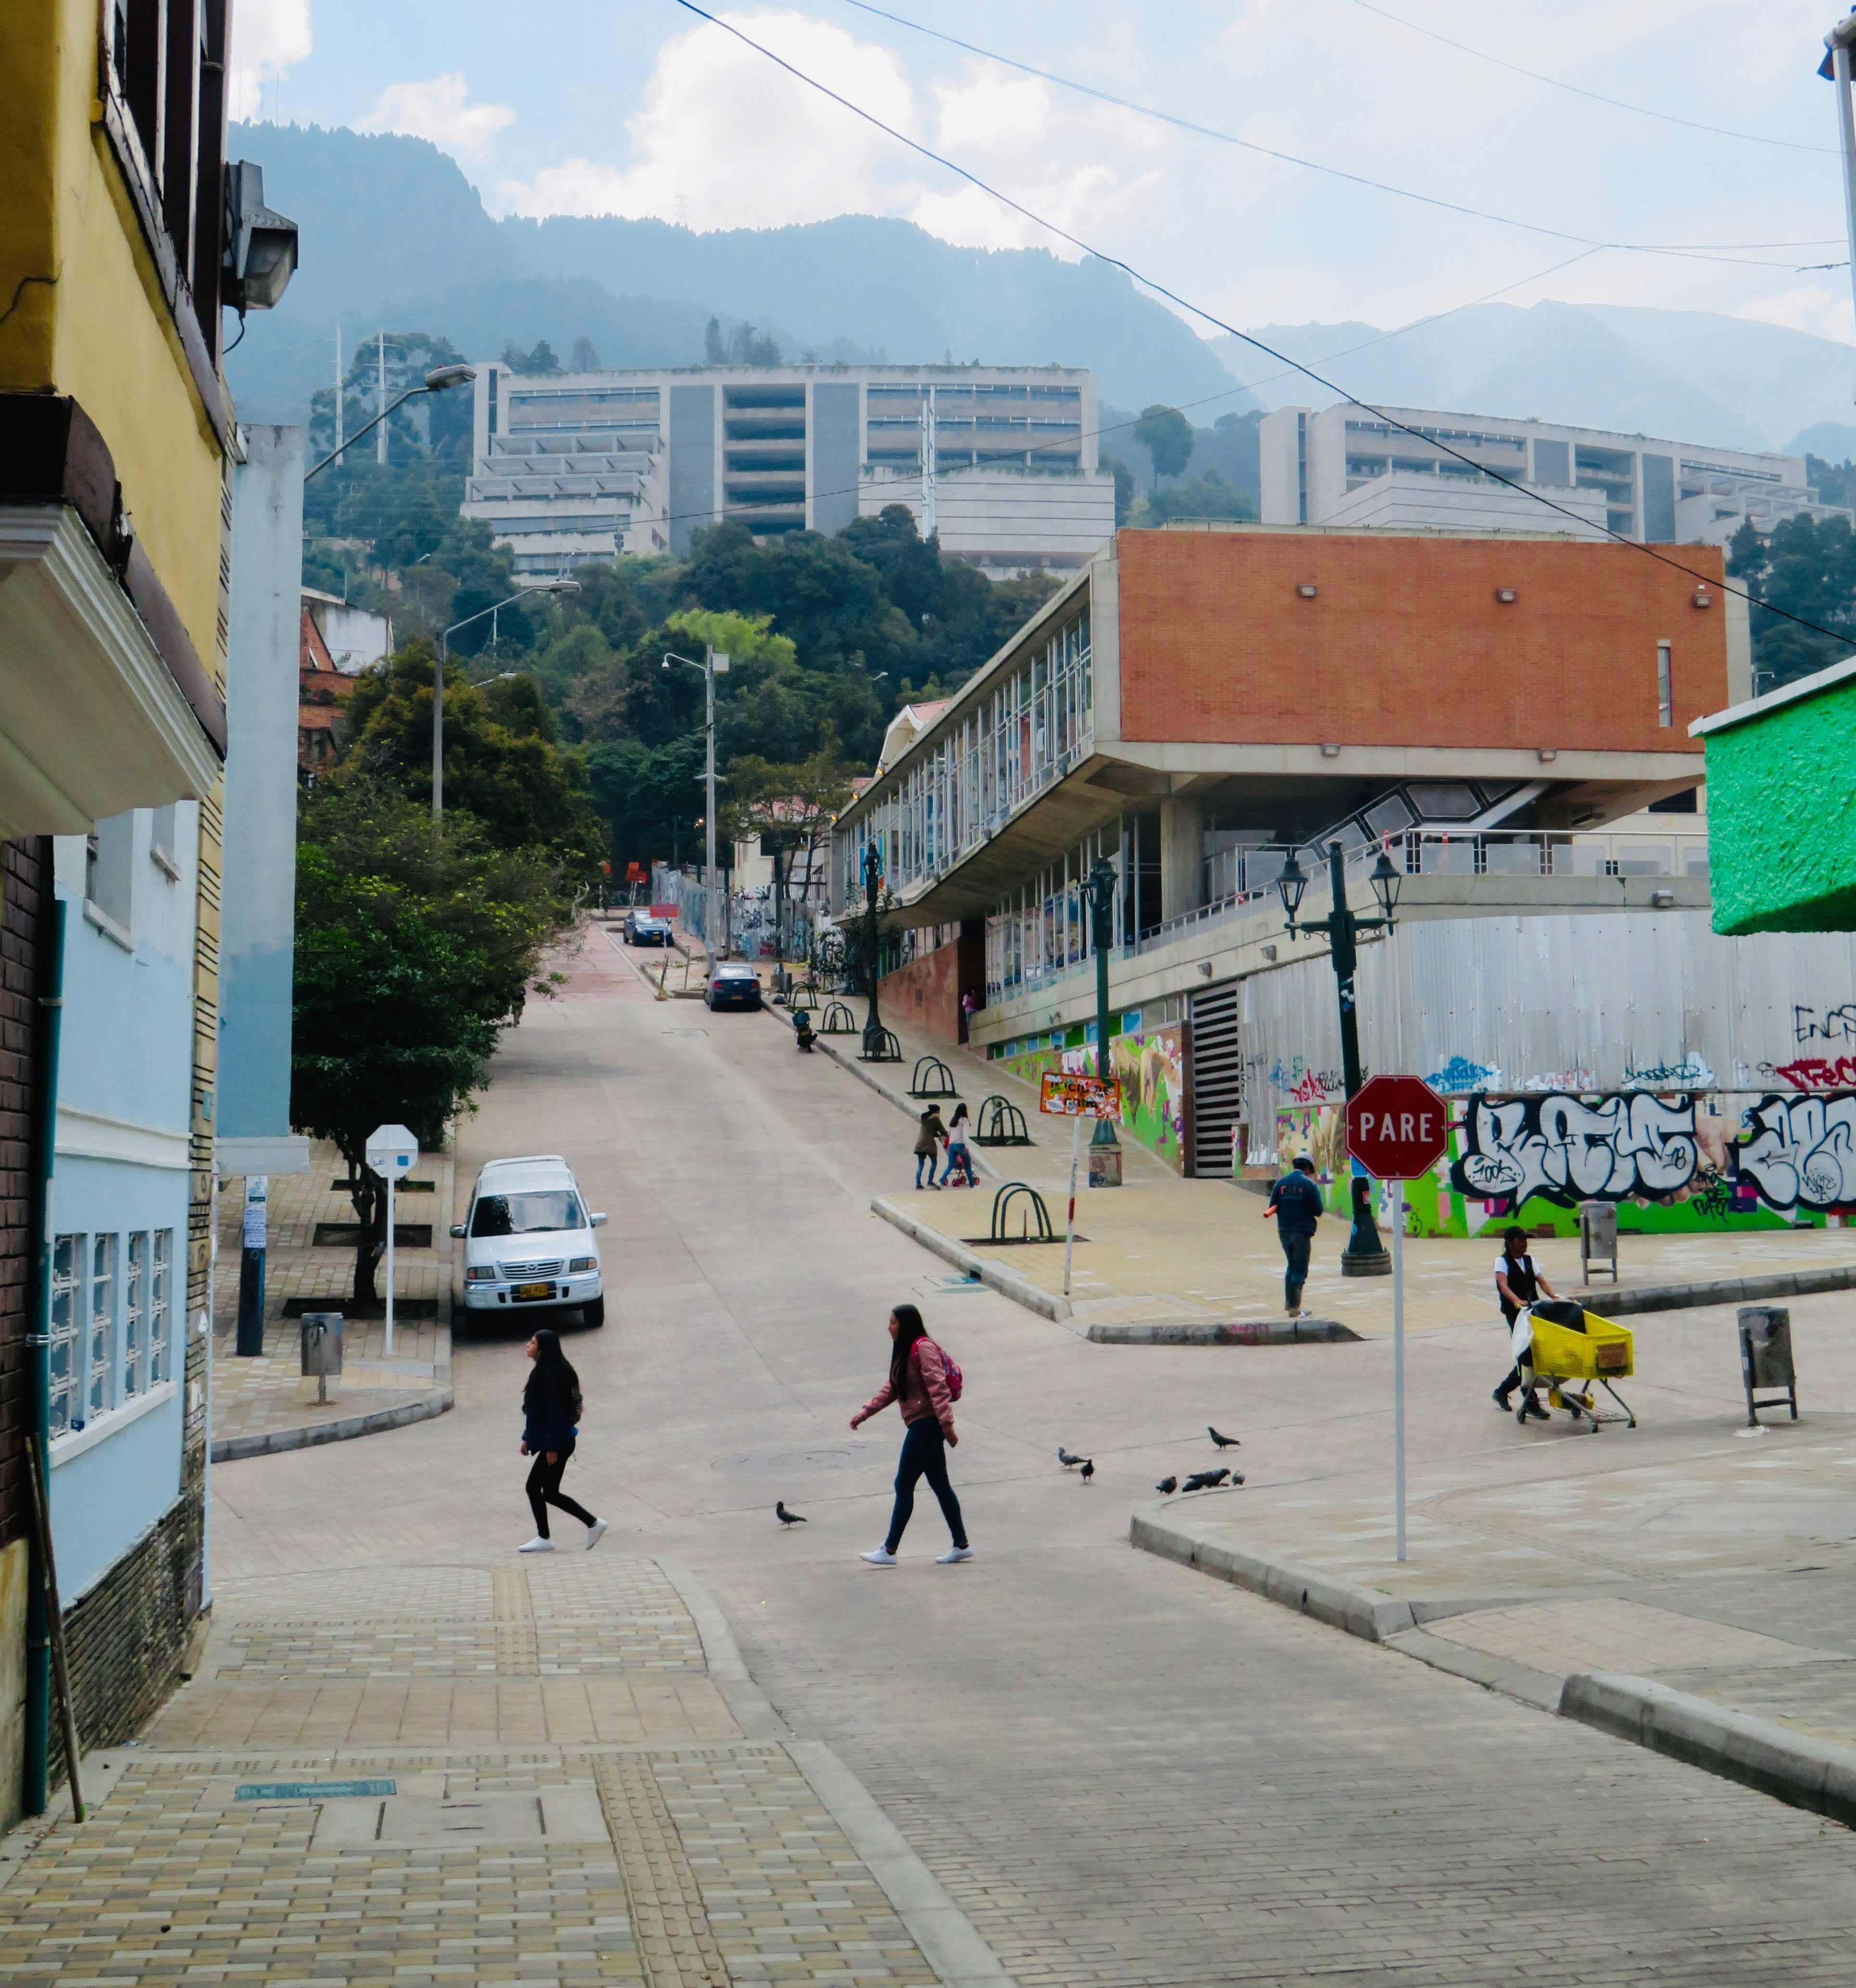 Where the heck are we now?: Bogota, the capital city of Columbia